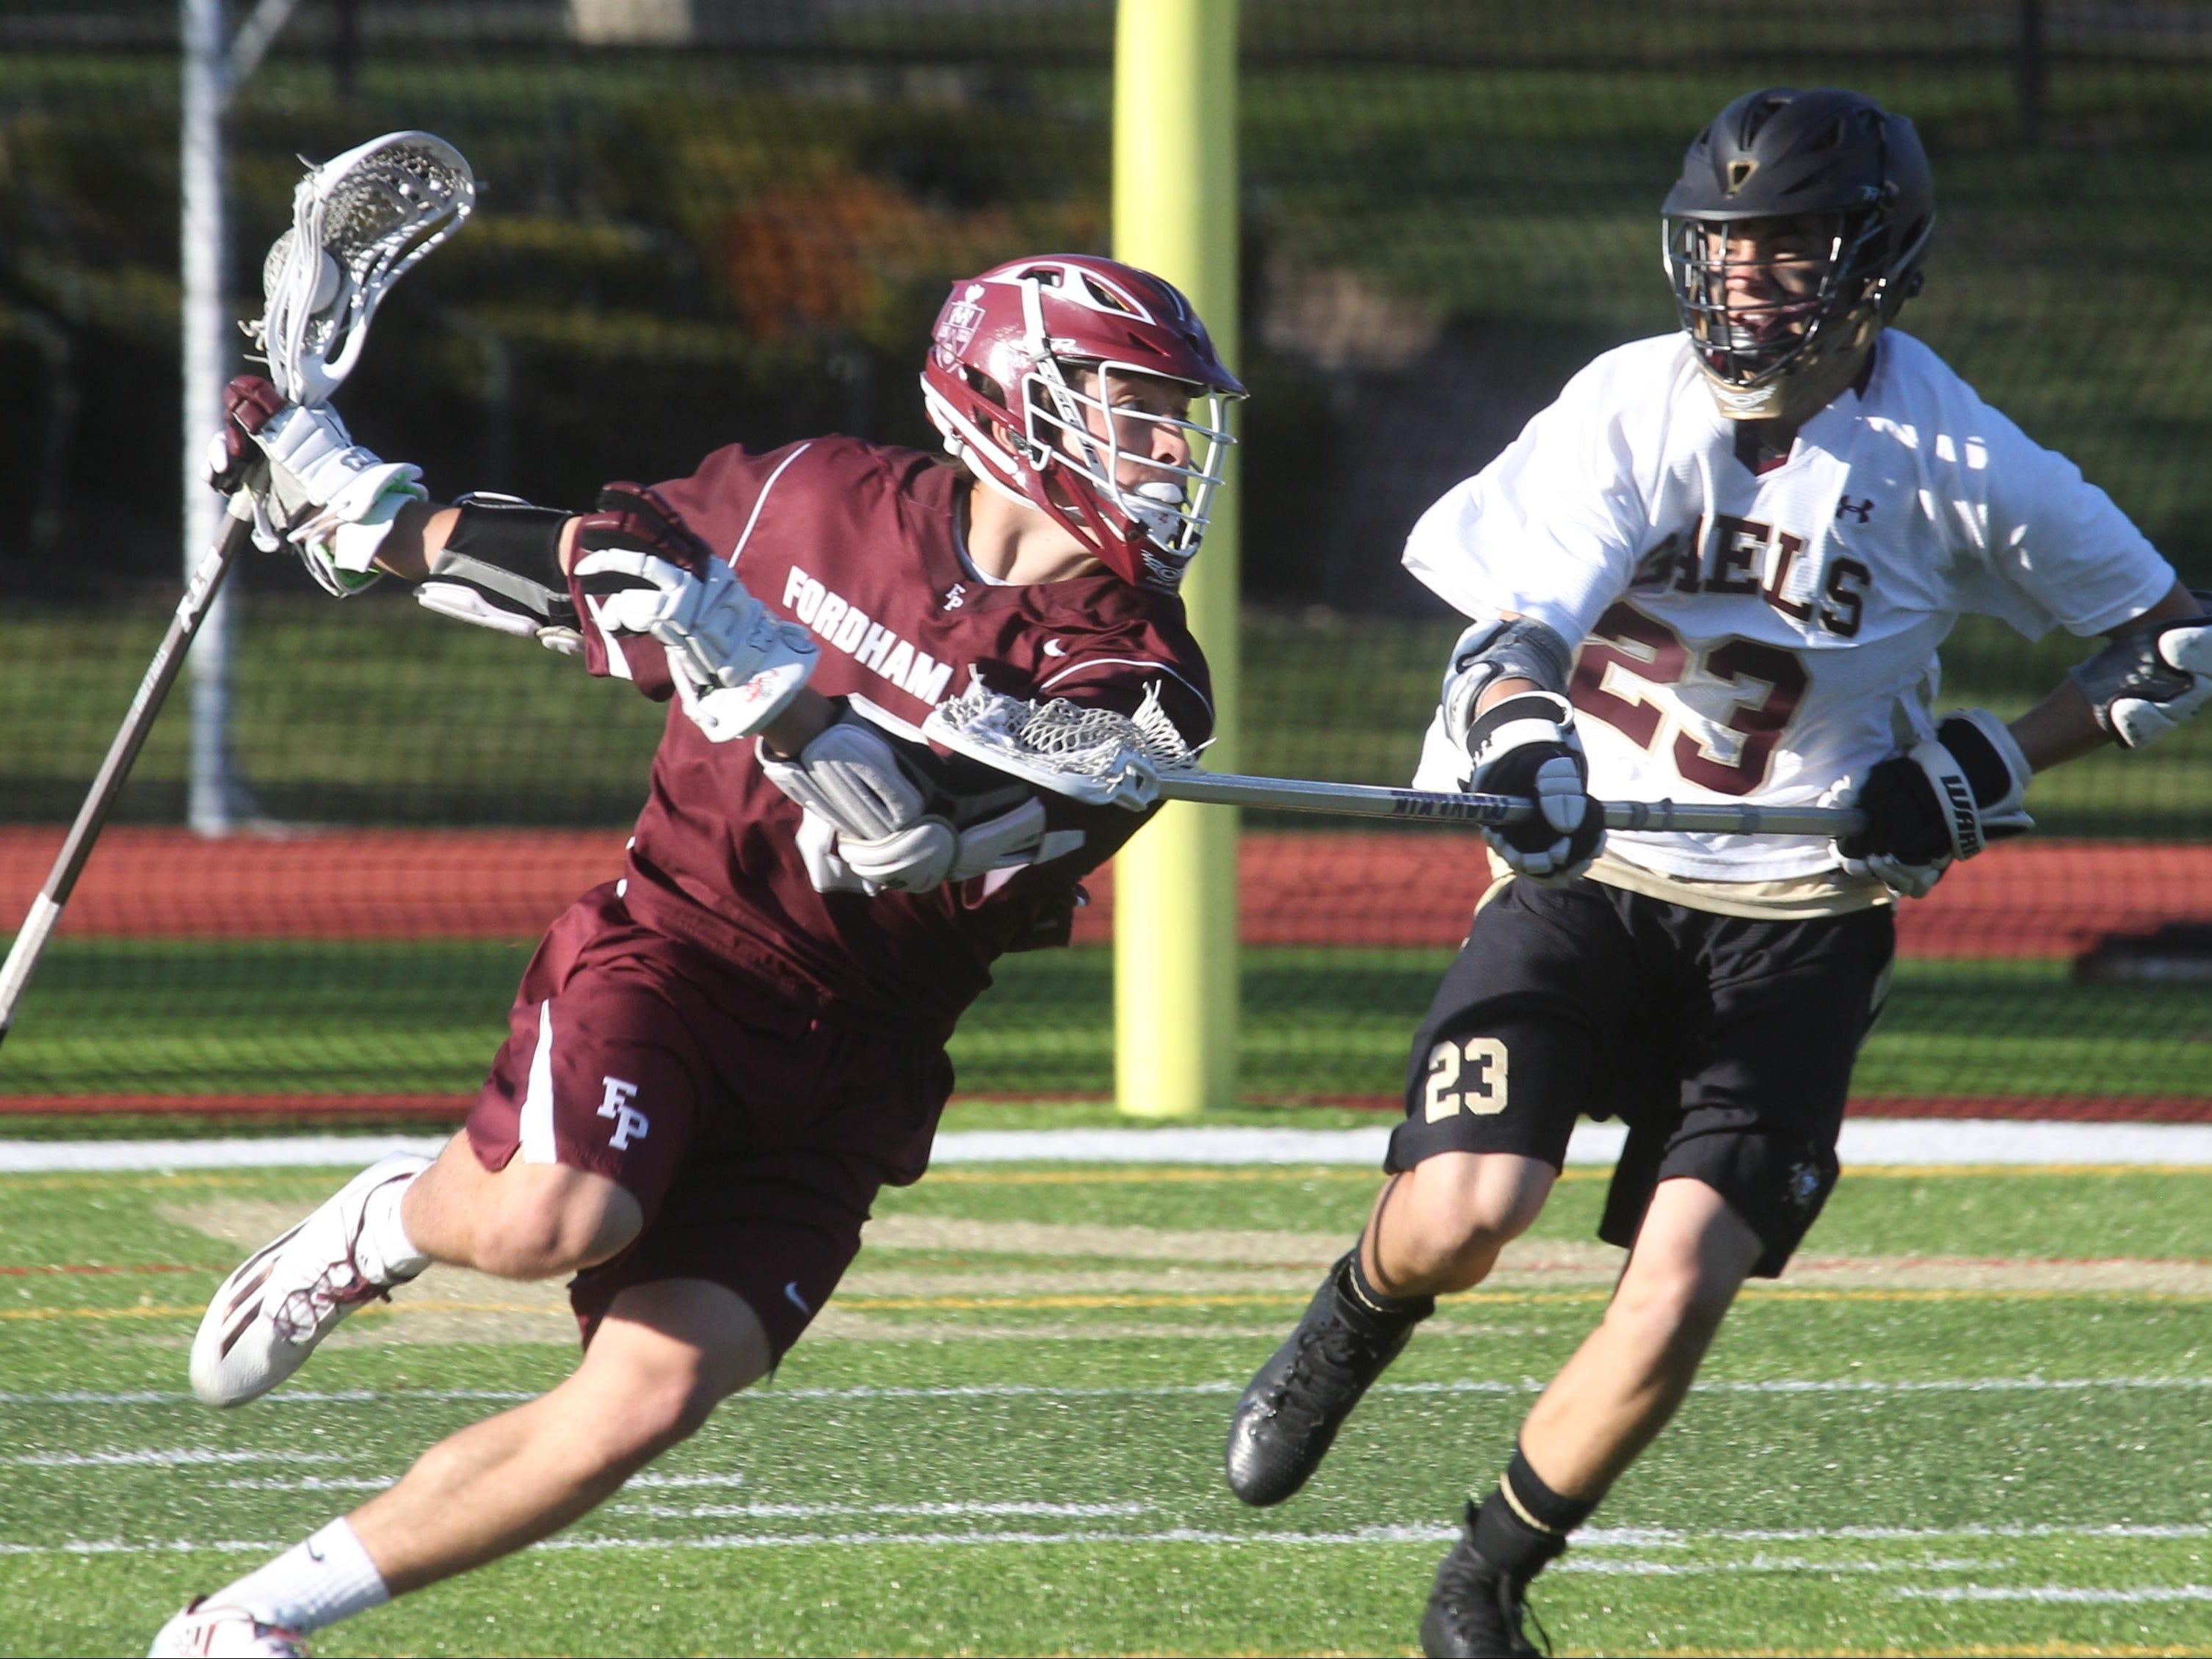 Fordham Prep's Andrew Abbattista is pressured by Iona Prep's Jack Cleary during their game at Iona Prep April 15, 2016. Fordham Prep won 8-7.